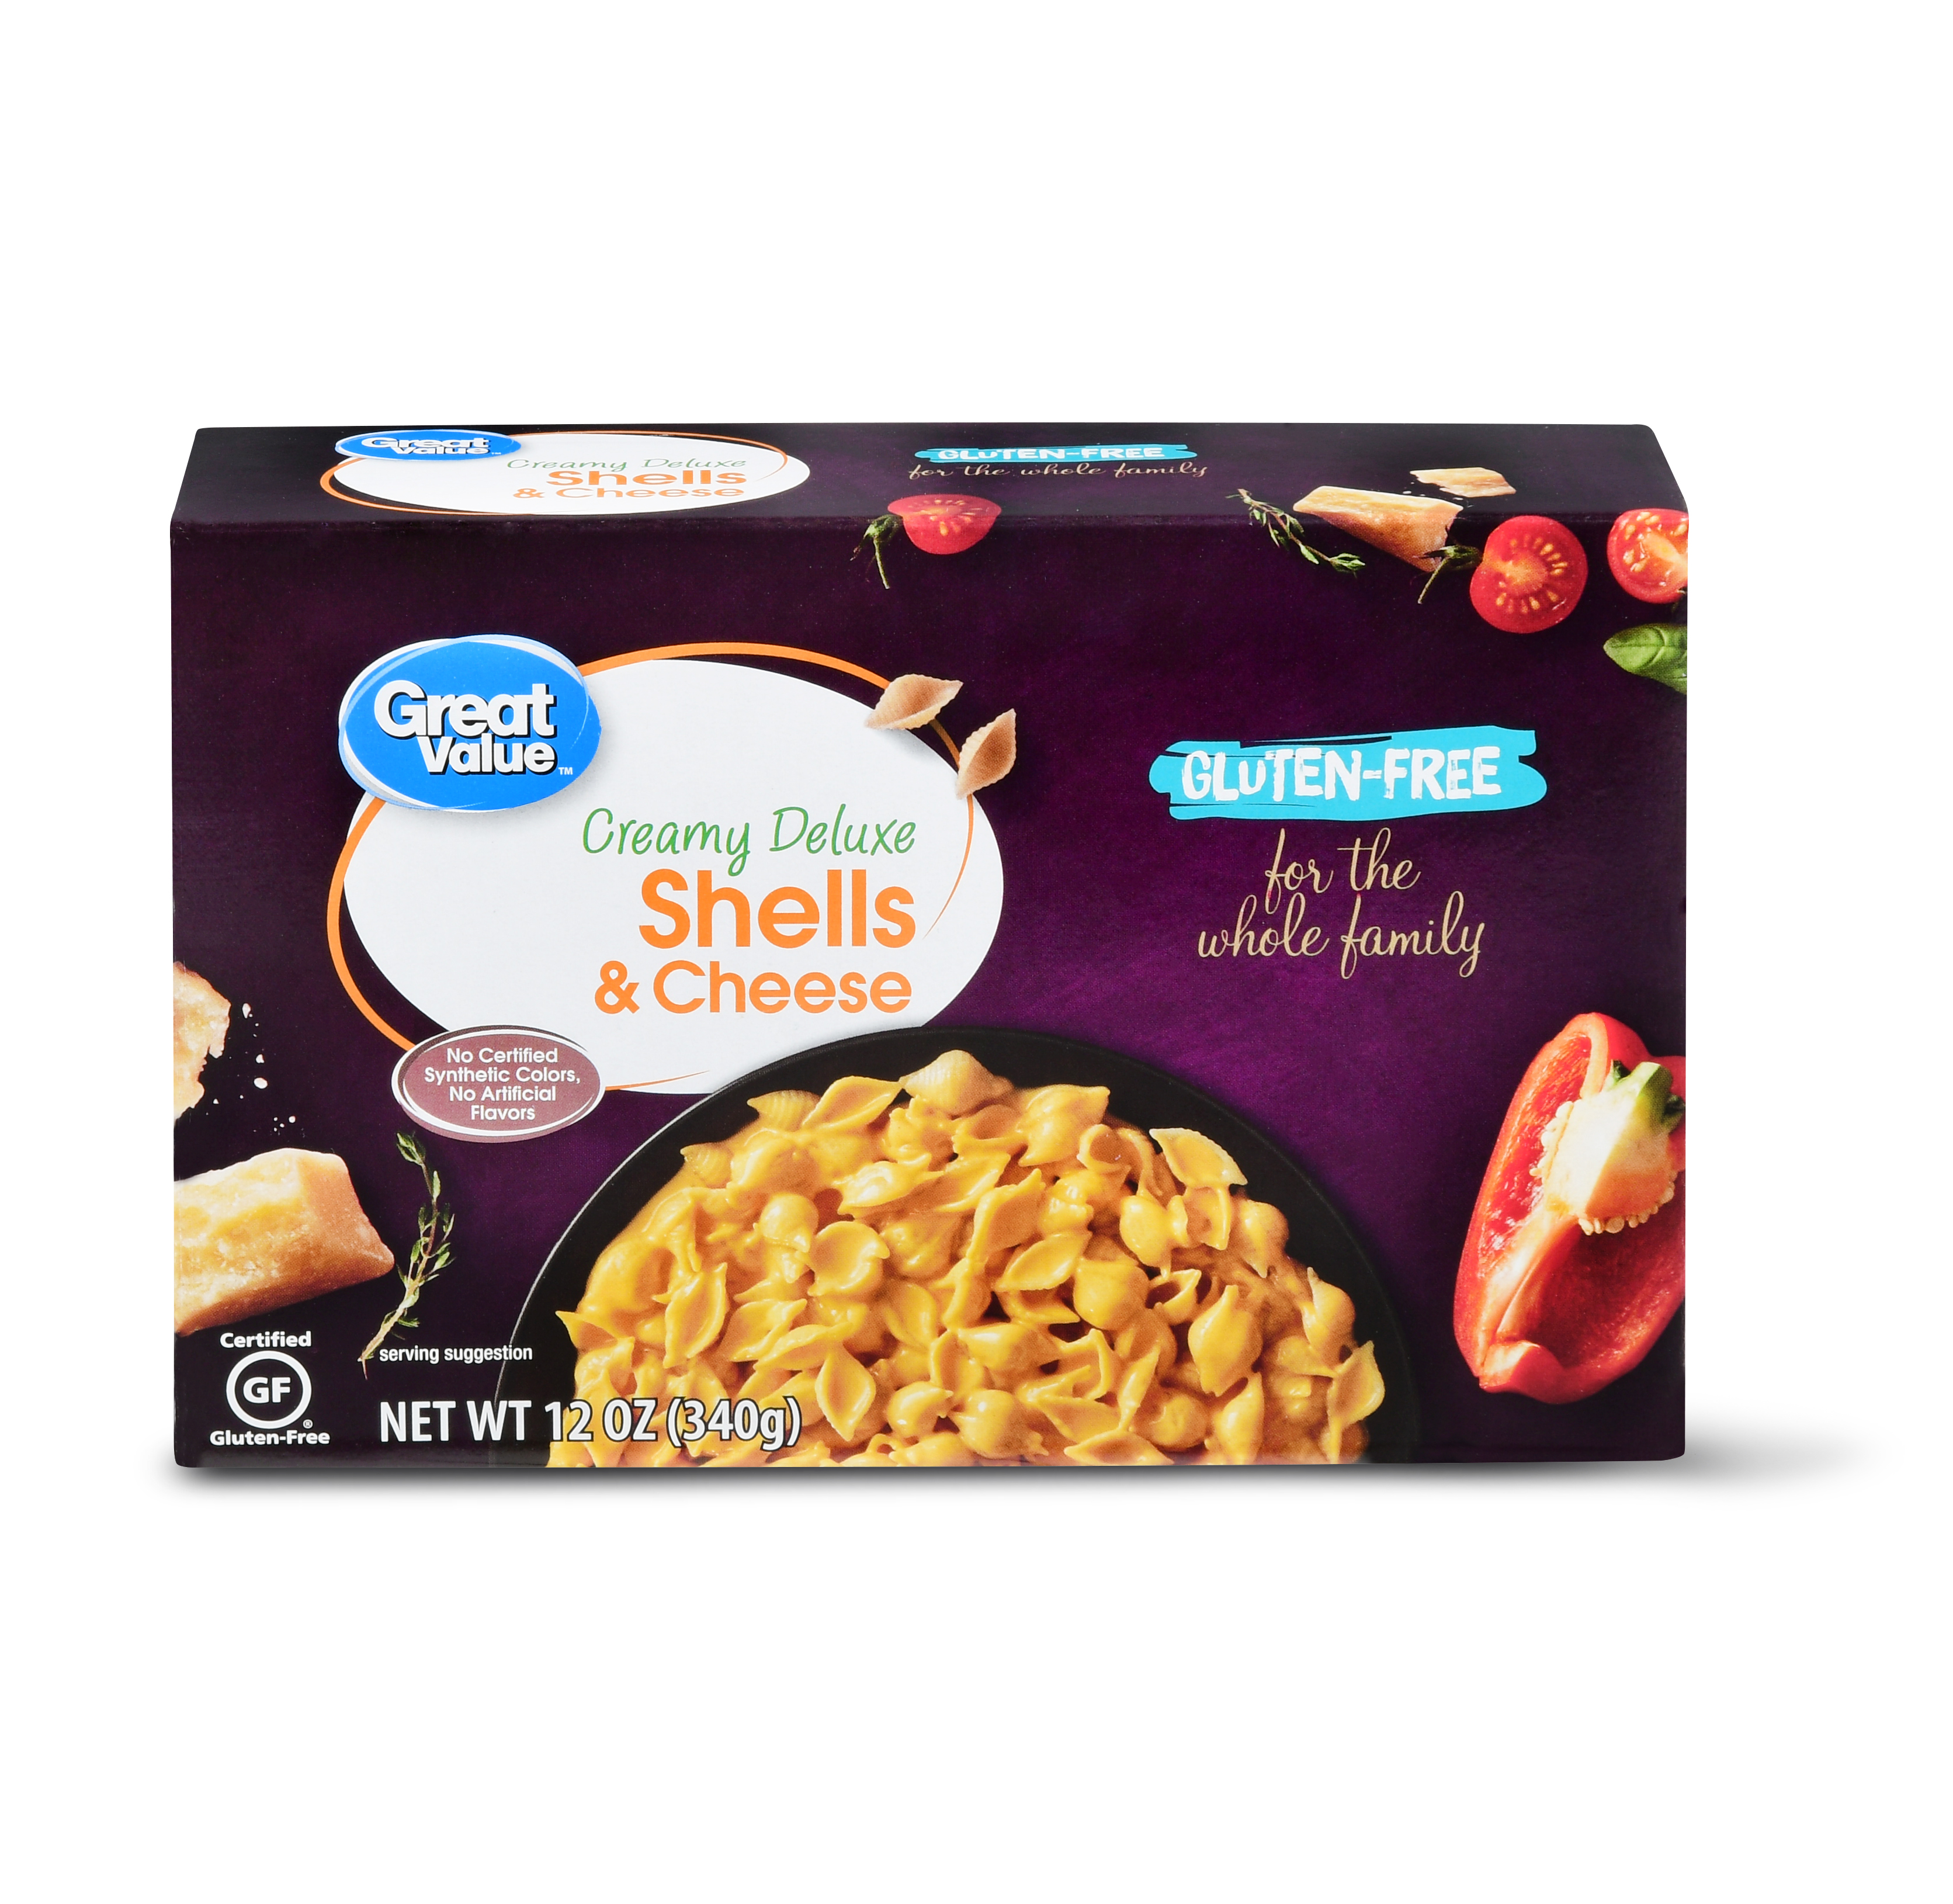 Great Value Gluten-Free Creamy Deluxe Shells & Cheese, 12 oz